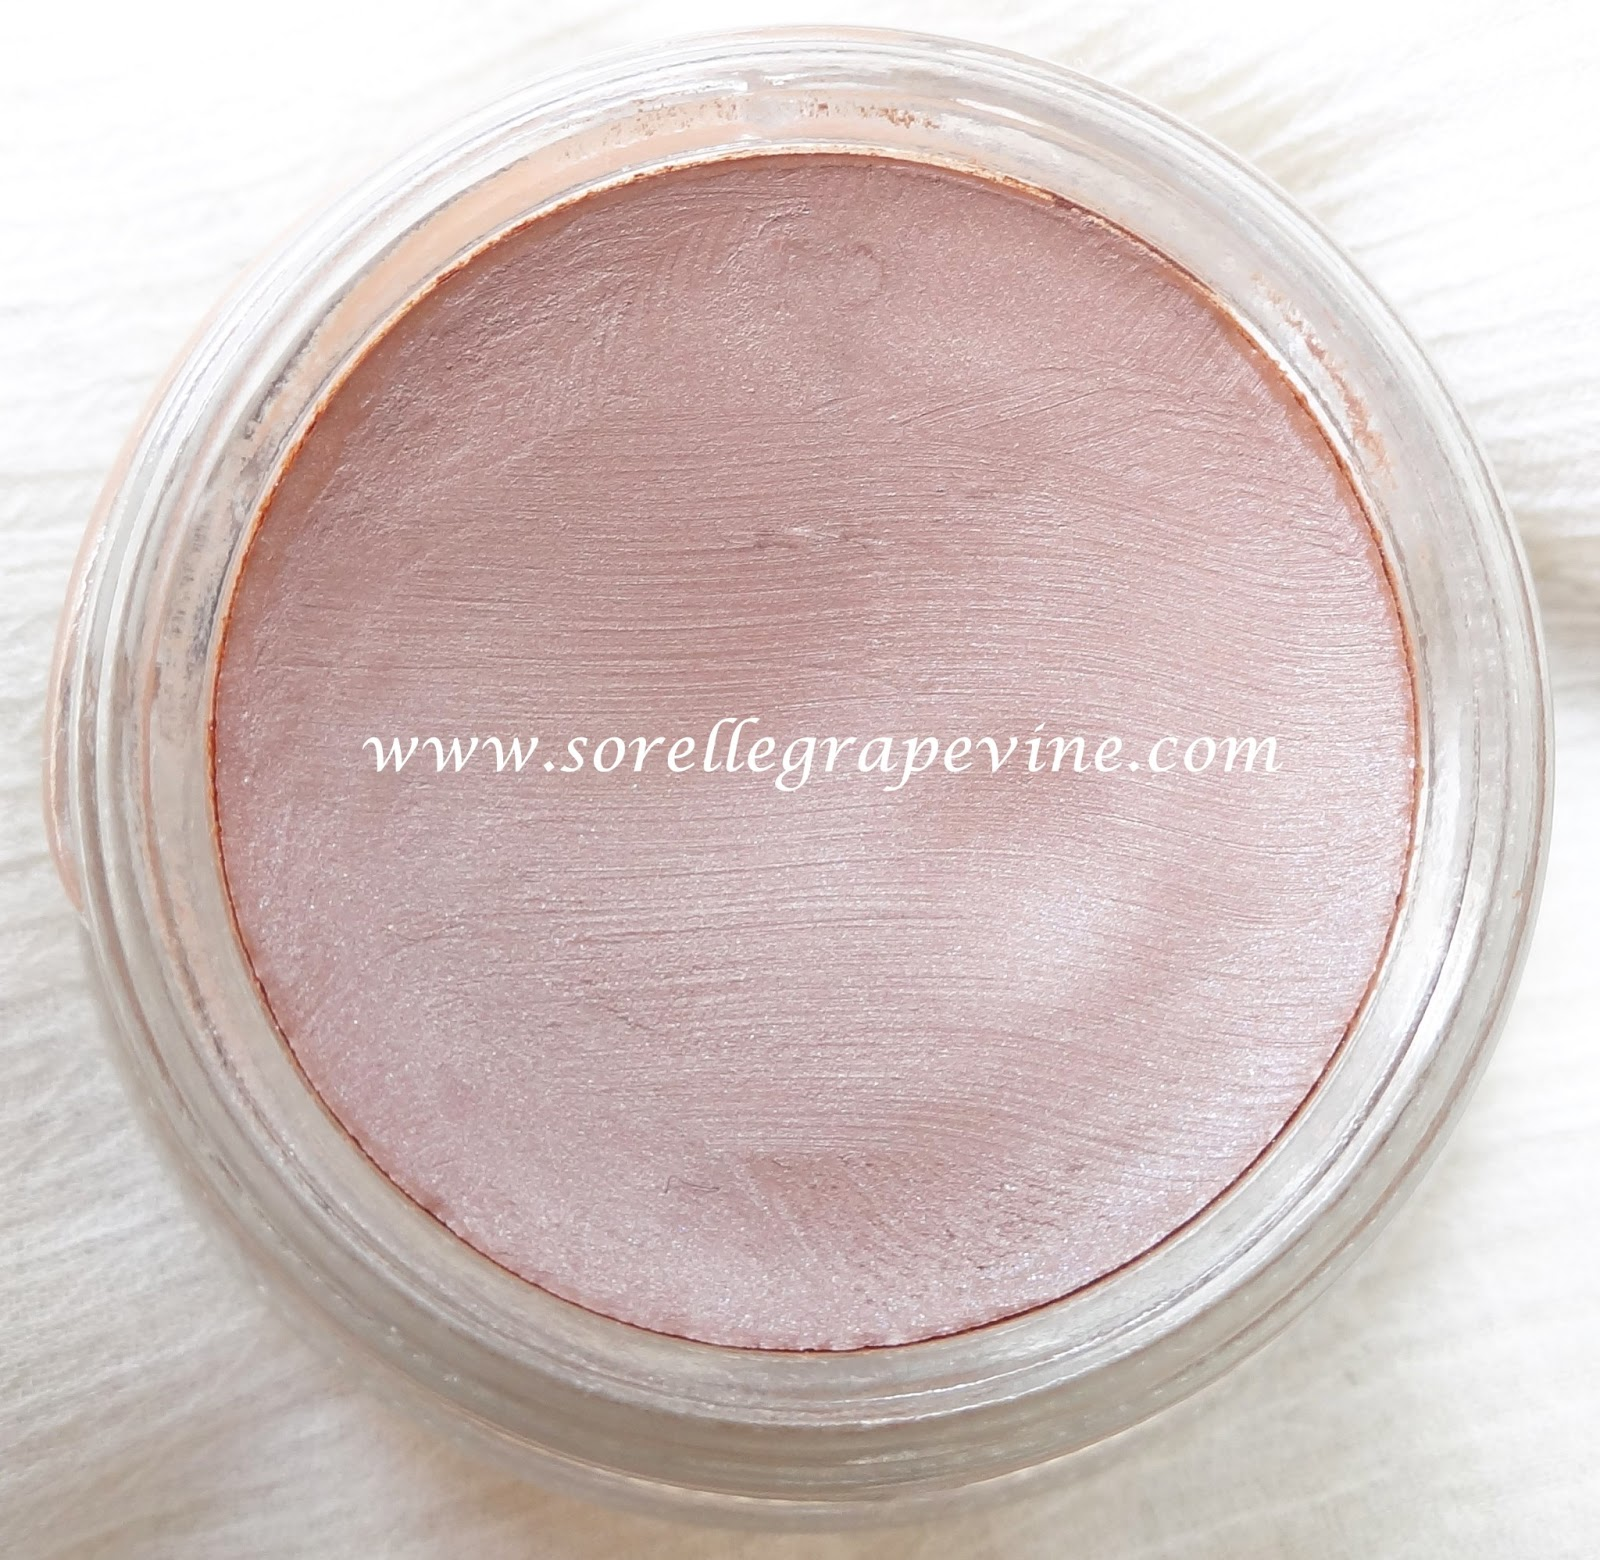 Sorelle grapevinemac paint pot groundwork swatch and review for Mac paint pot groundwork